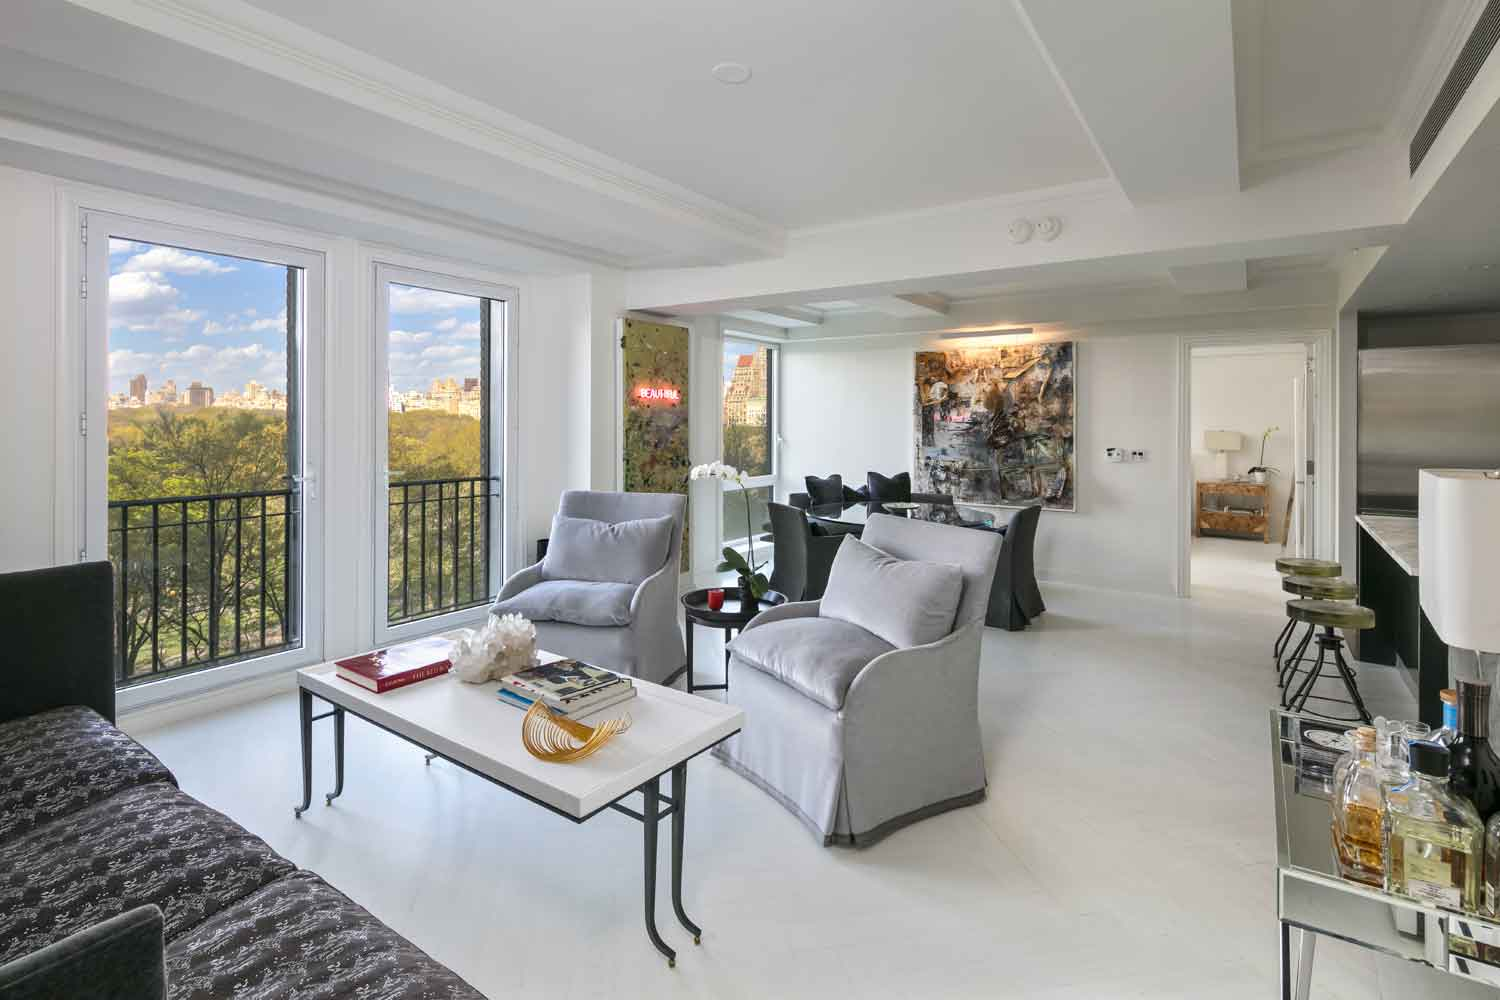 This Manhattan residence is situated in the highly coveted Essex House, a landmark building on Central Park South. The elegant two-bedroom, two and one half bedroom home boasts spectacular views of Central Park and is just a few blocks from New York's iconic Broadway Theater District.